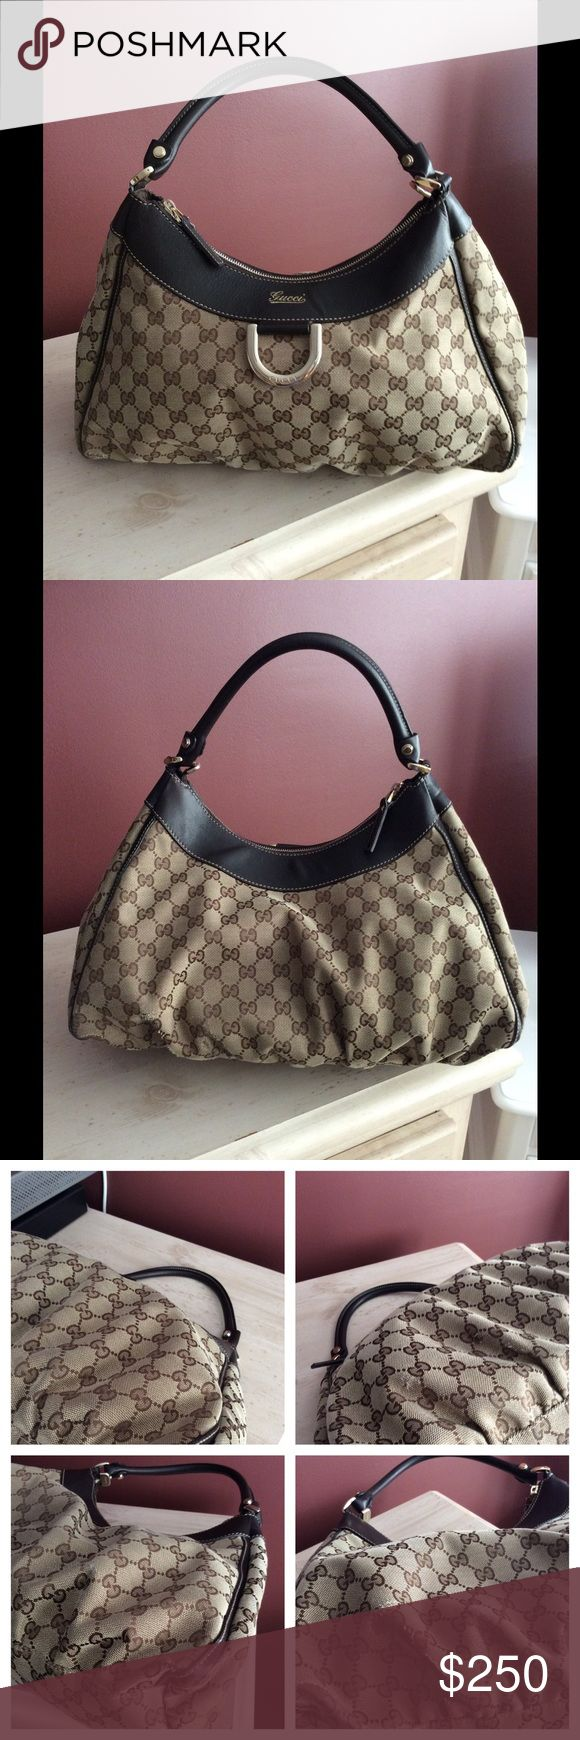 Gucci horsebit shoulder bag 100% Authentic Great bag. Bought in London so receipt reflects price in pounds. I used it a lot and the pics show the wear. Still think it can find a new home and be loved as I loved it. Will throw in the original dust bag. Price reflects the wear. Inside is super clean. Gucci Bags Shoulder Bags